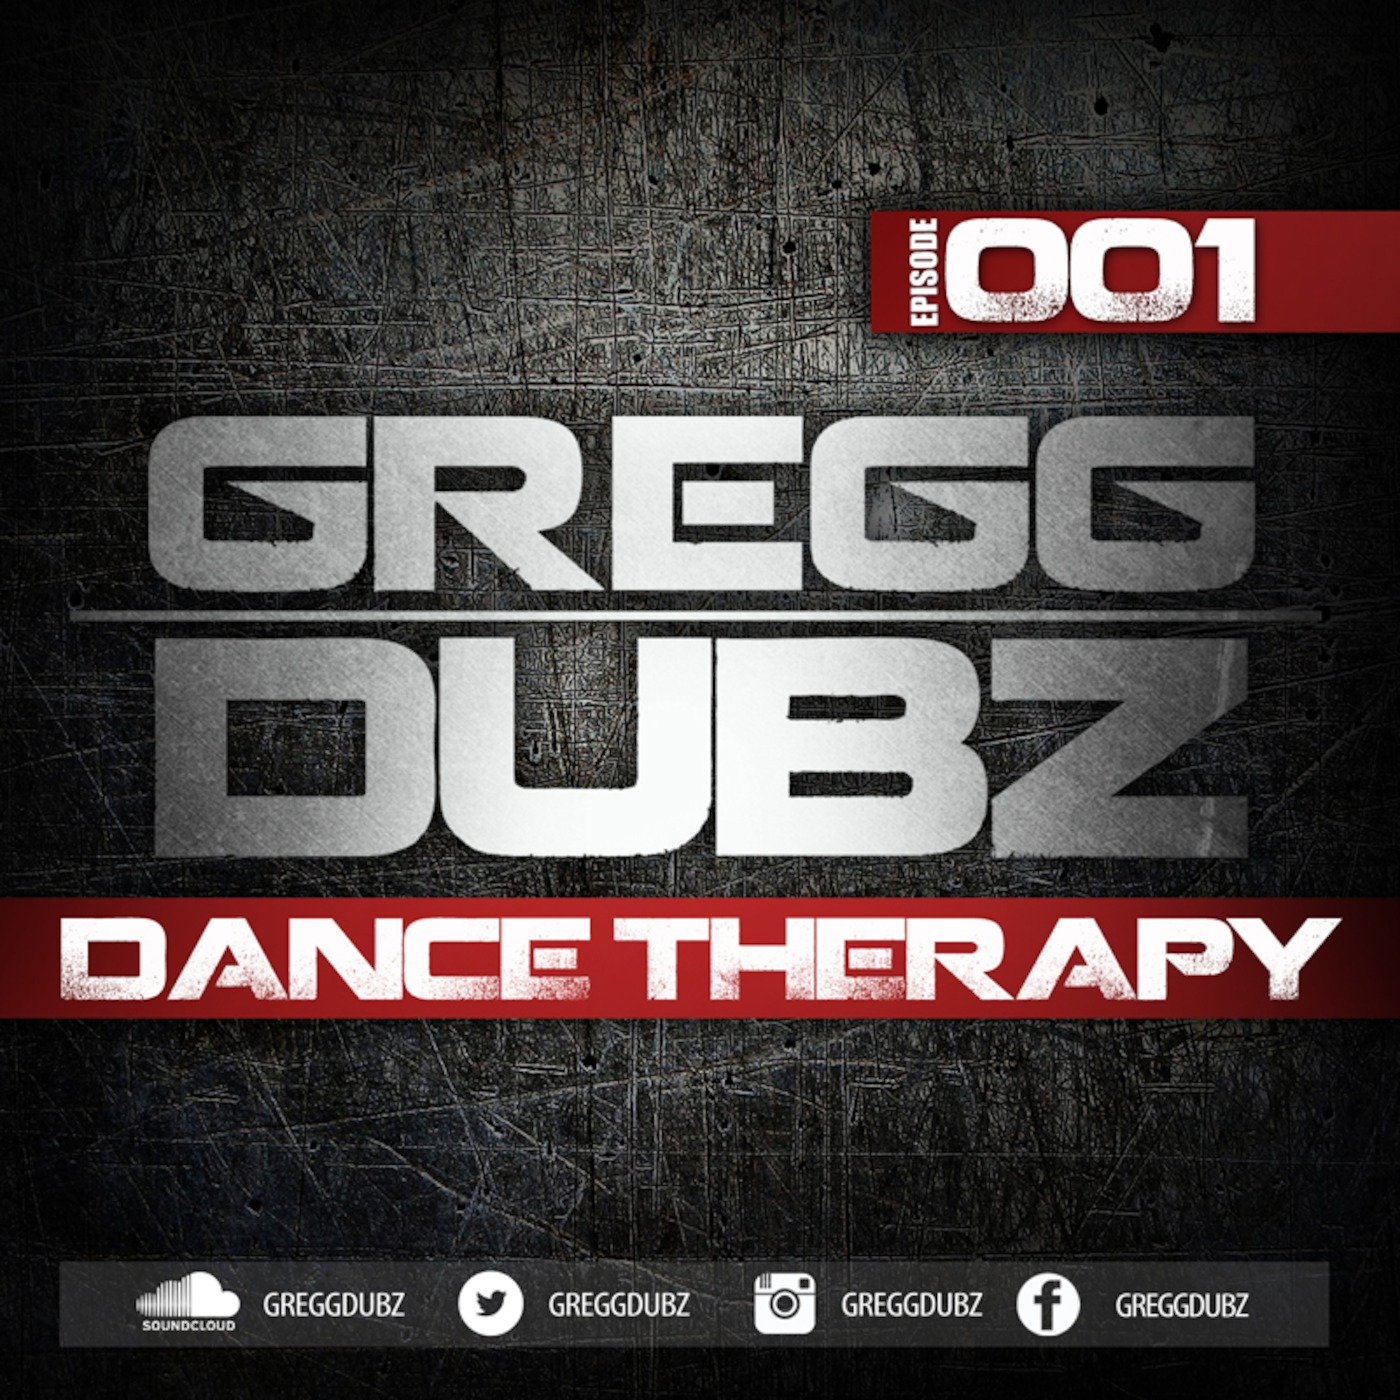 Gregg Dubz DANCE THERAPY